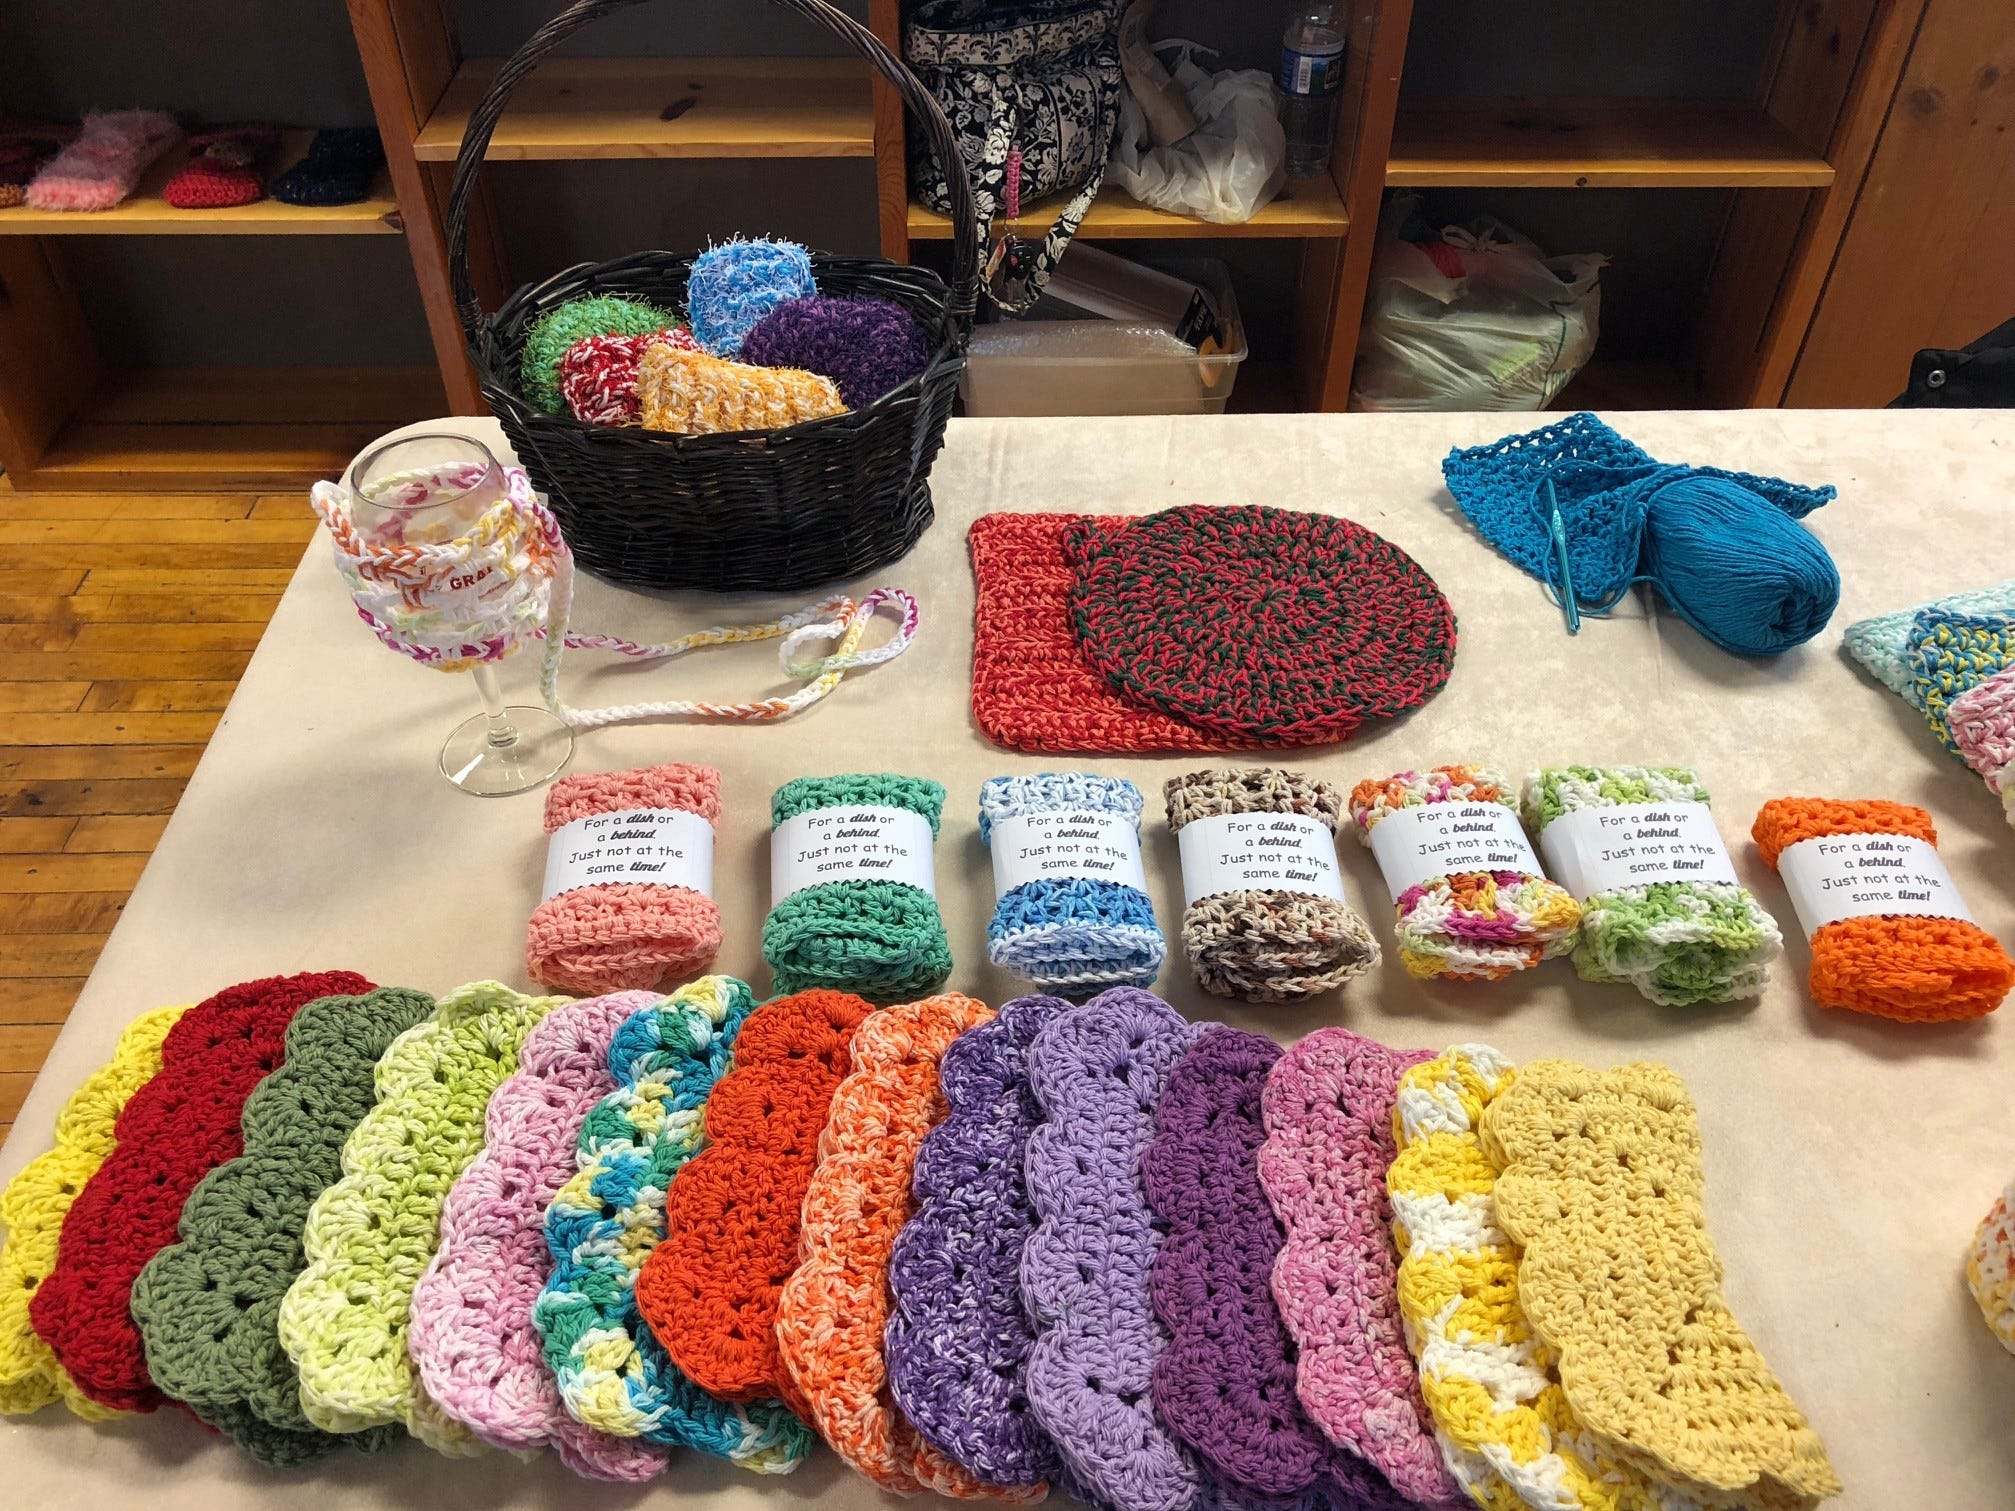 Memom's Crafts include practical items such as potholders and wine-glass lanyards.